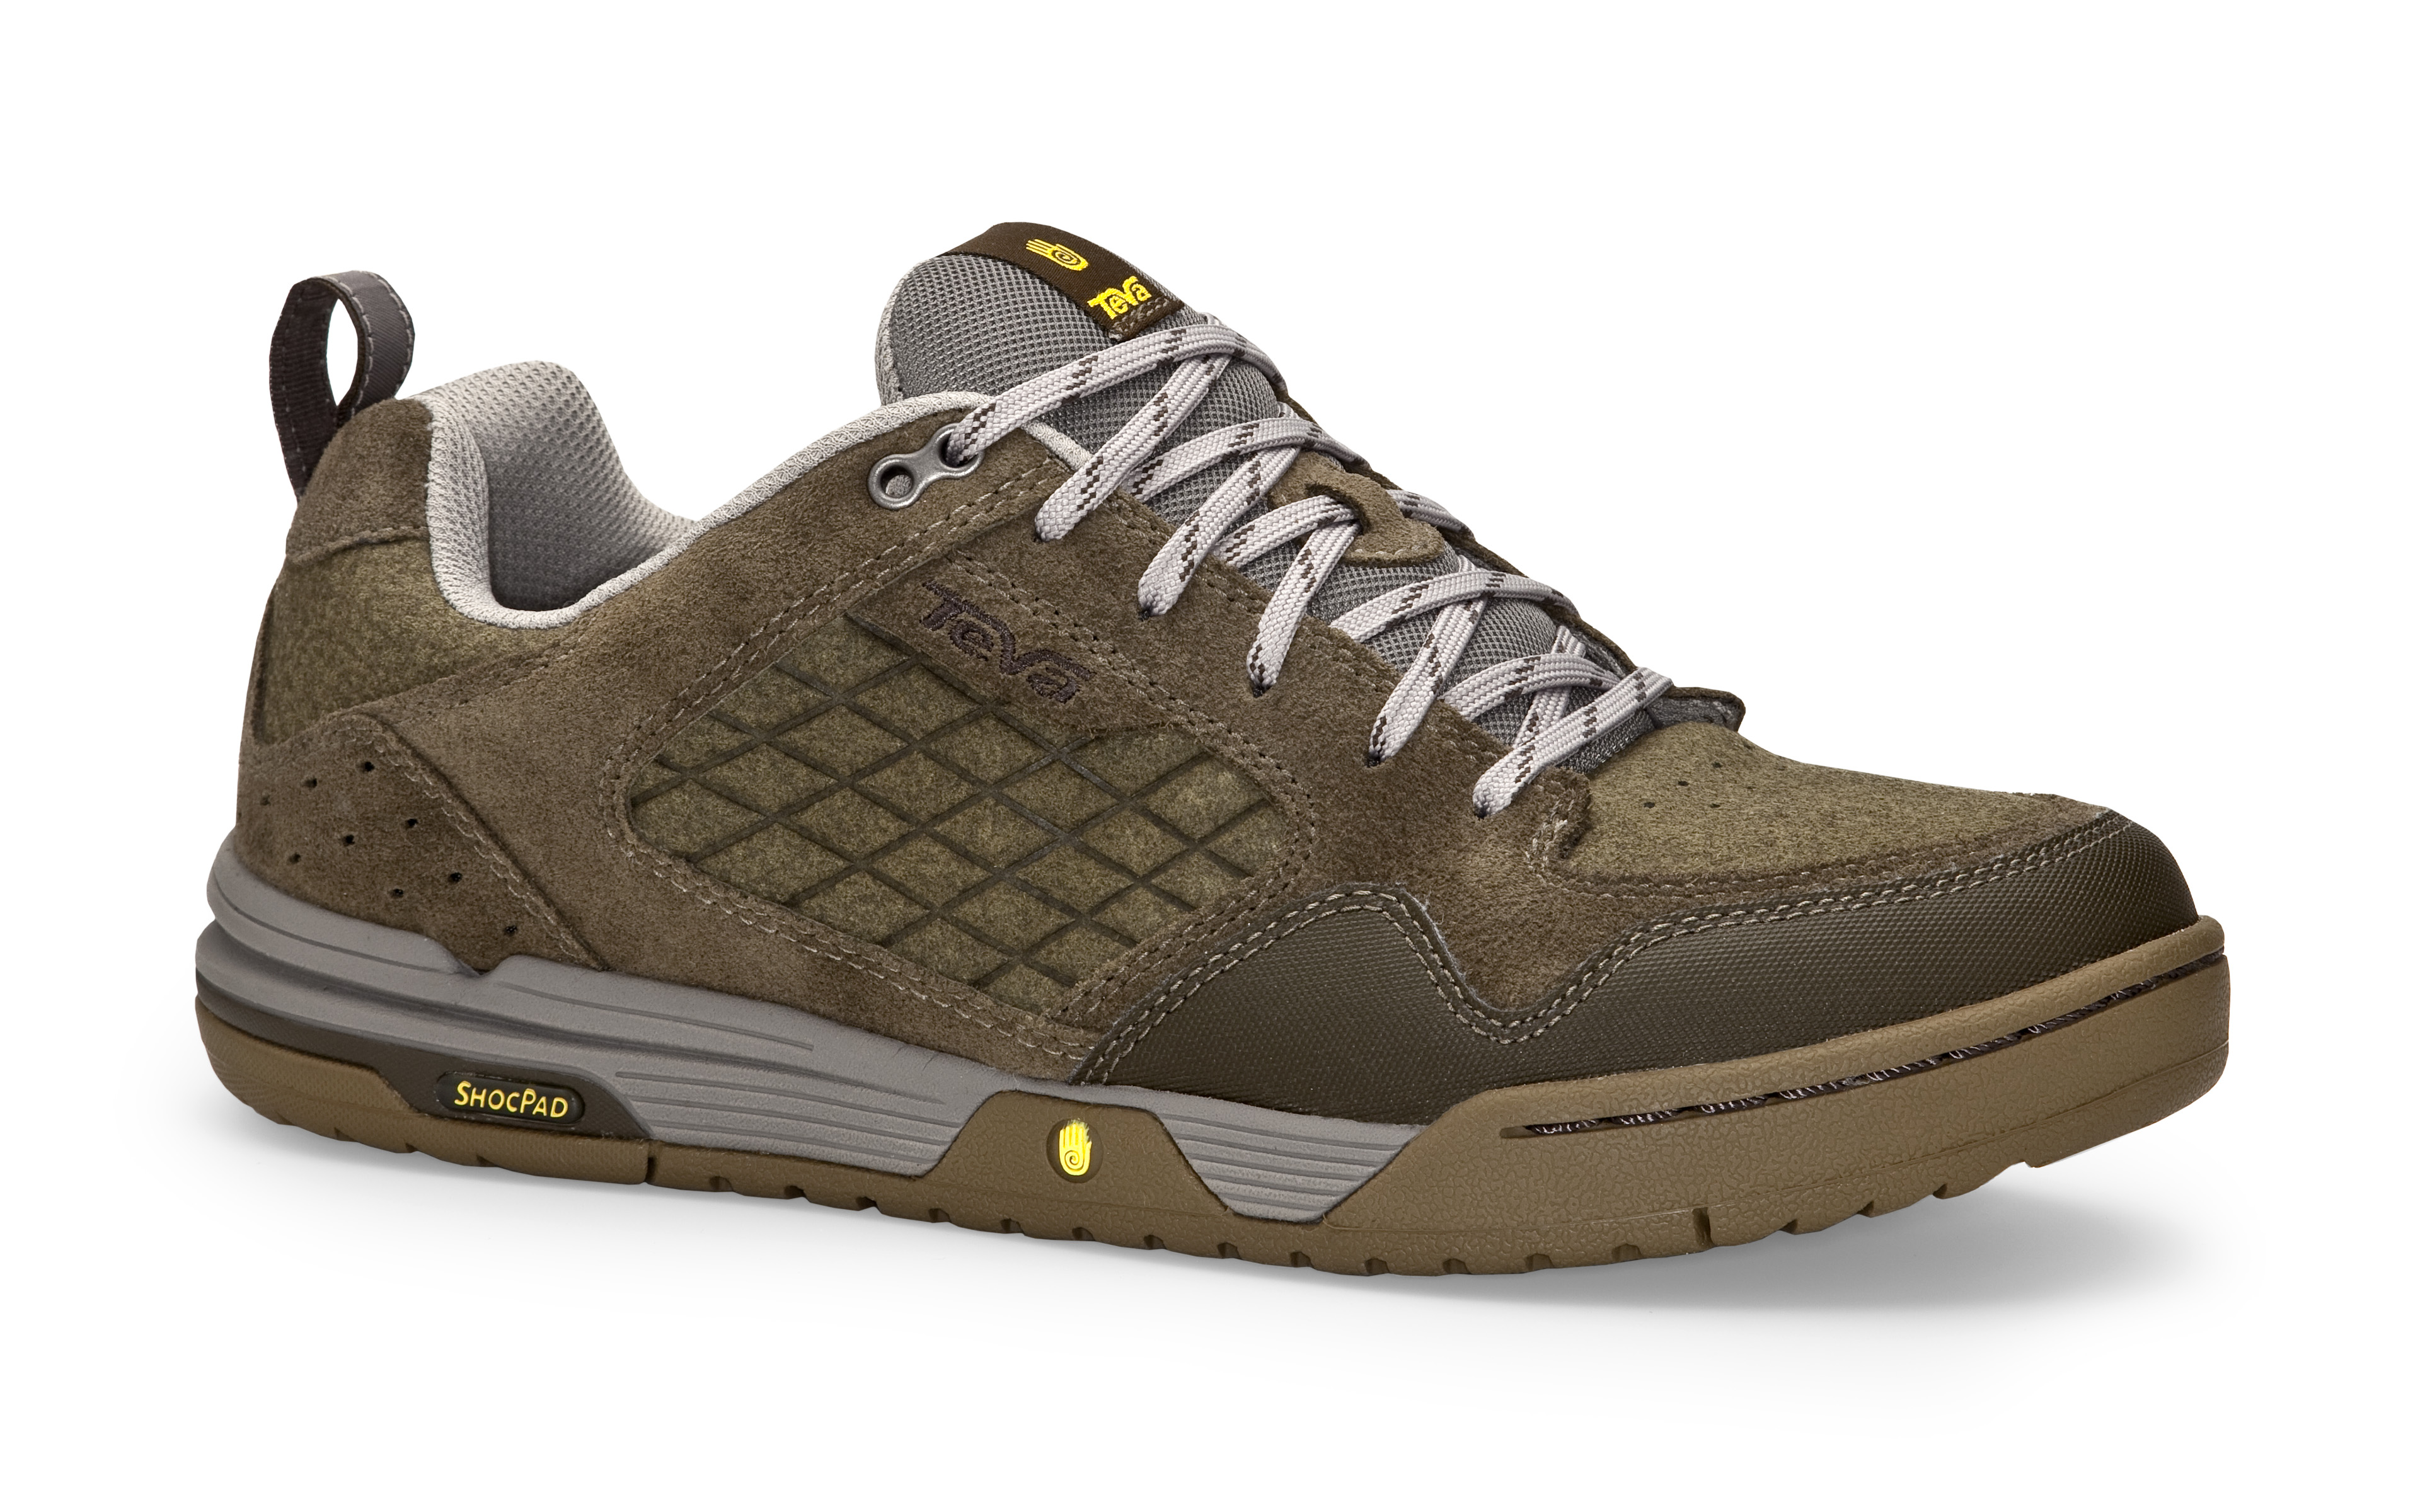 The Teva Pinner freeride MTB shoe launched in Fall 2011.